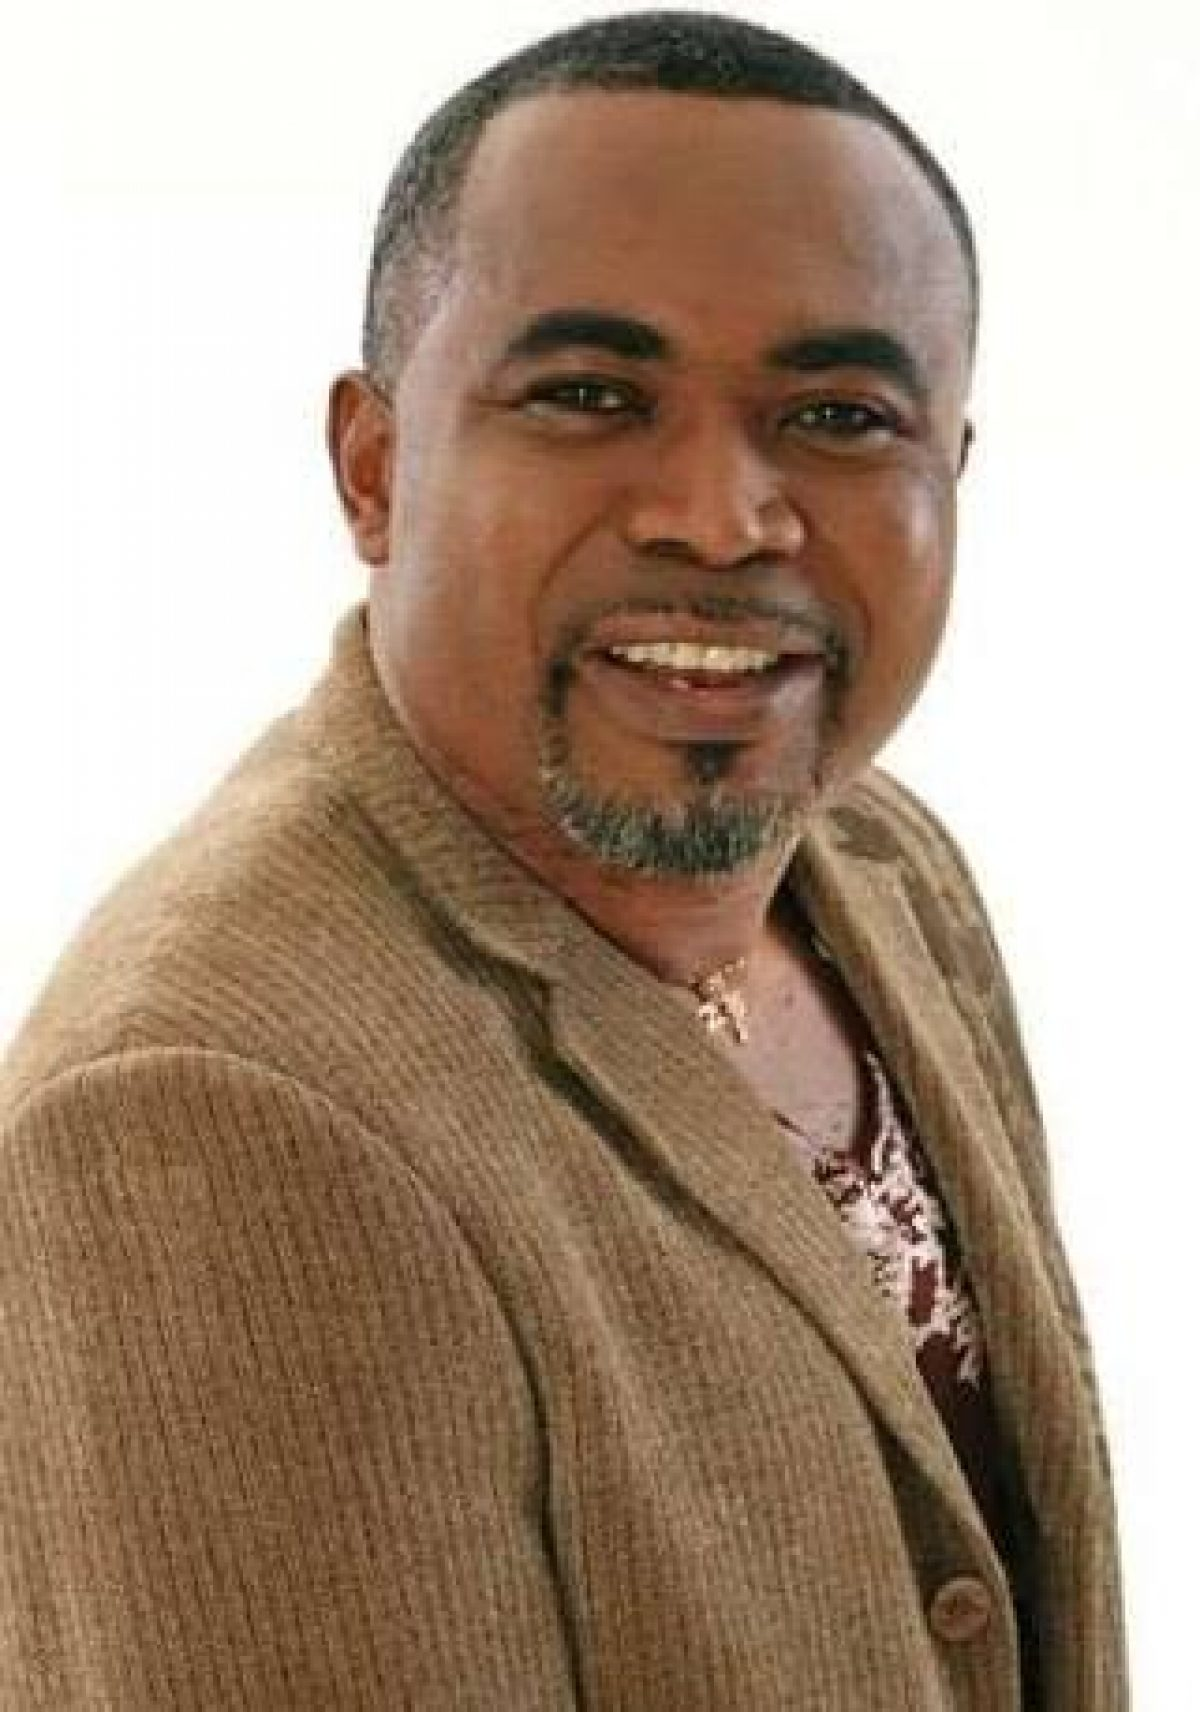 Veteran Actor Zack Orji Has Described The Stay At Home Directive By The Government As An Opportunity For Families To Spend Quality Time Together While Not Neglecting The Preventive Measures To Slow C